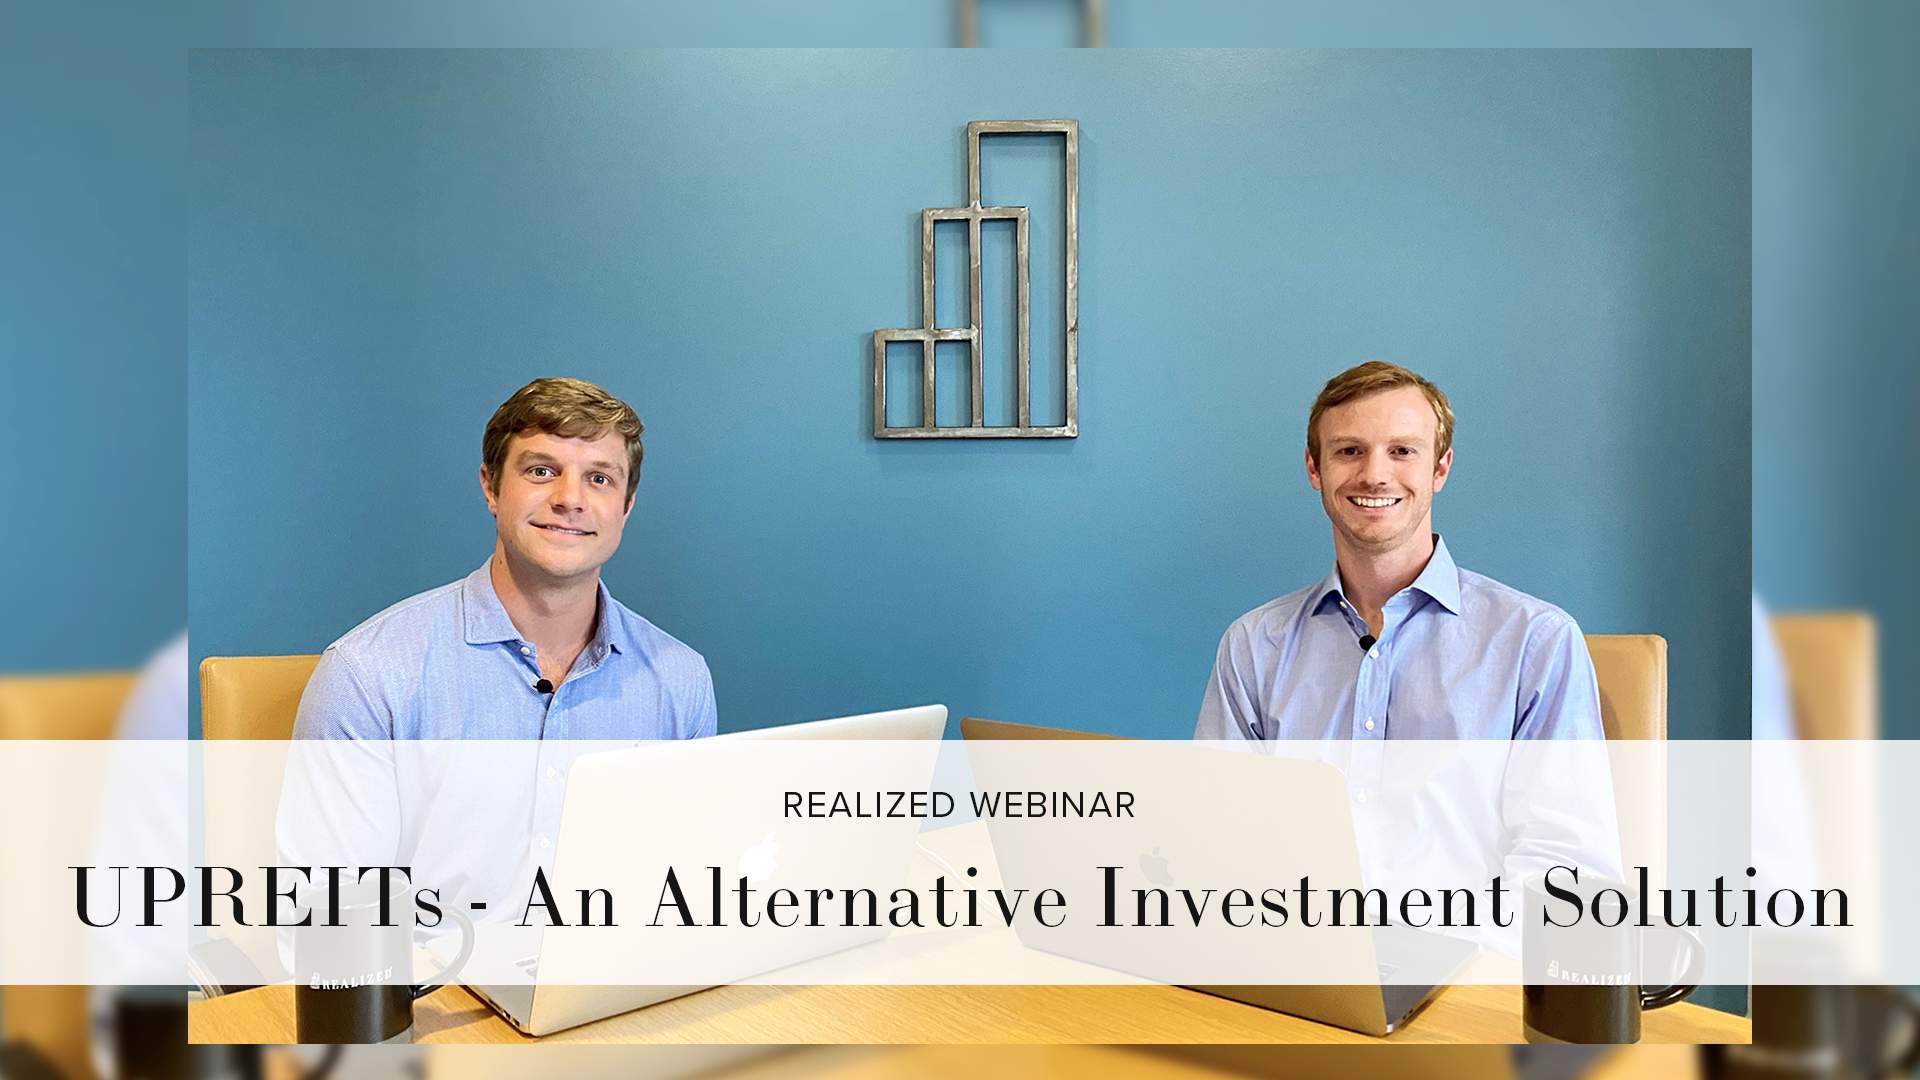 upreits-an-alternative-investment-solution